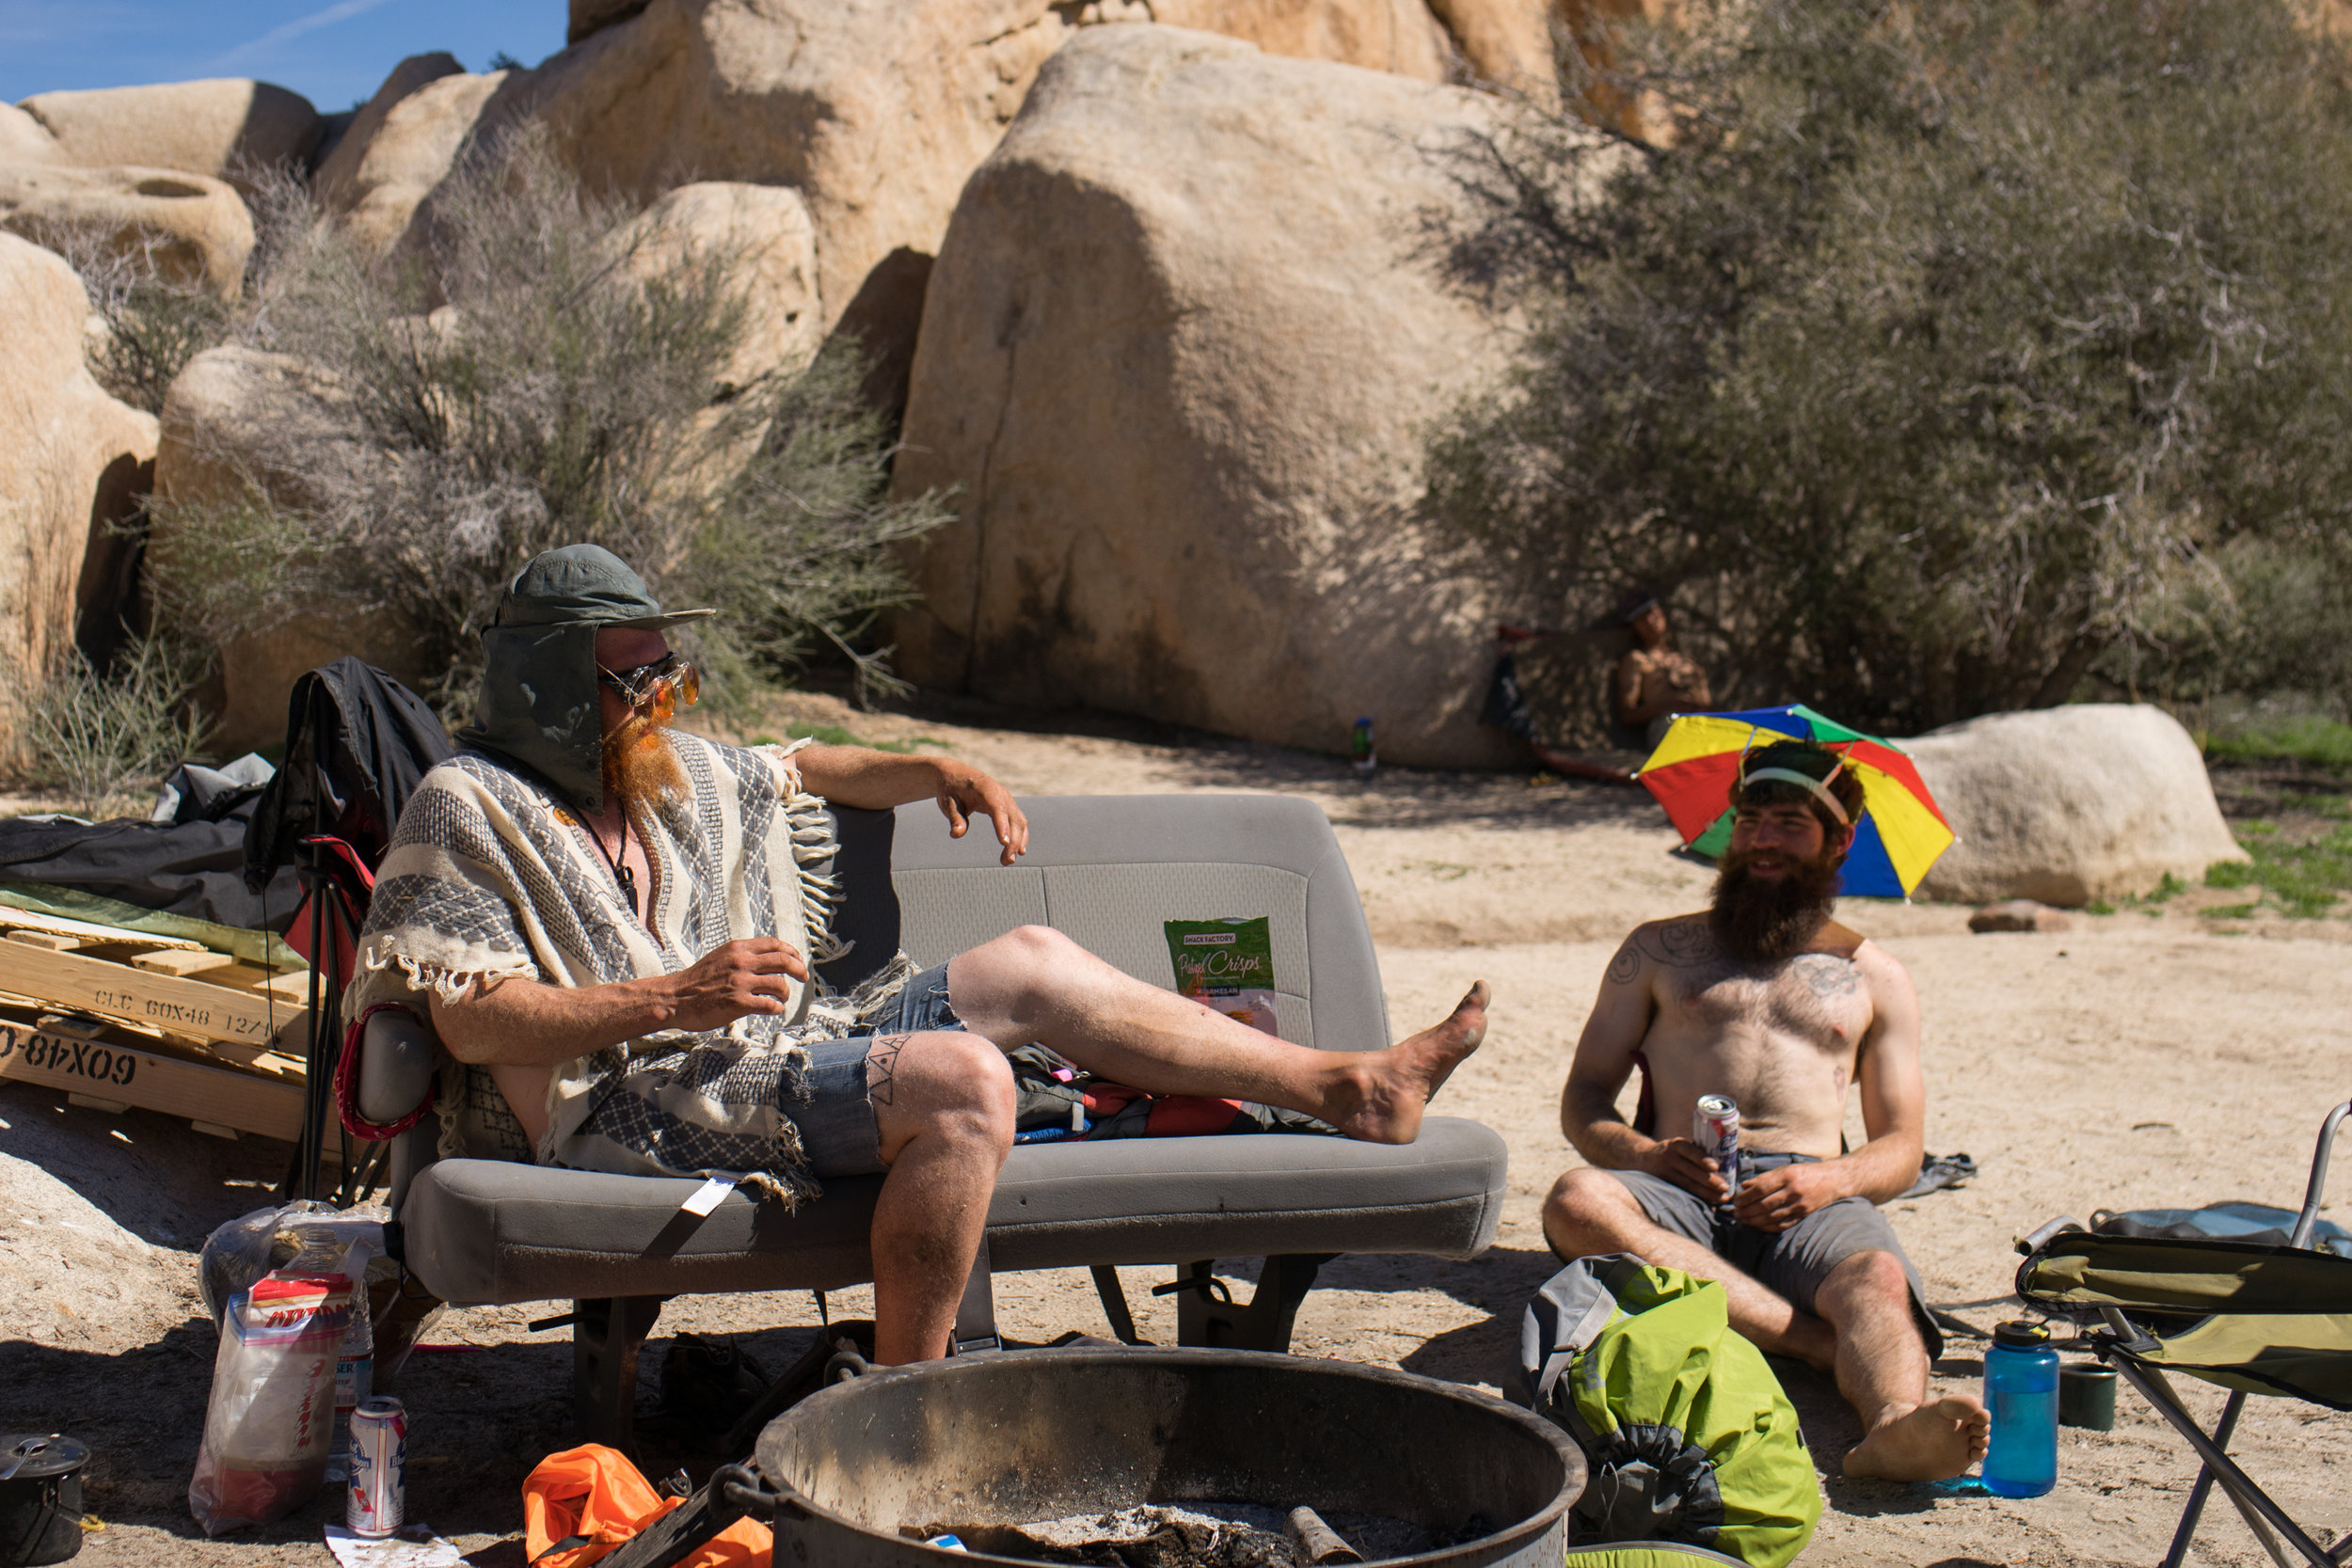 Two climbers at Camp #5 discuss potential routes for the day. Hidden Valley Campground is the place for odd, eccentric, climbers from all walks of life to come and associate with others. They often come to Joshua Tree by themselves, as both these climbers did.